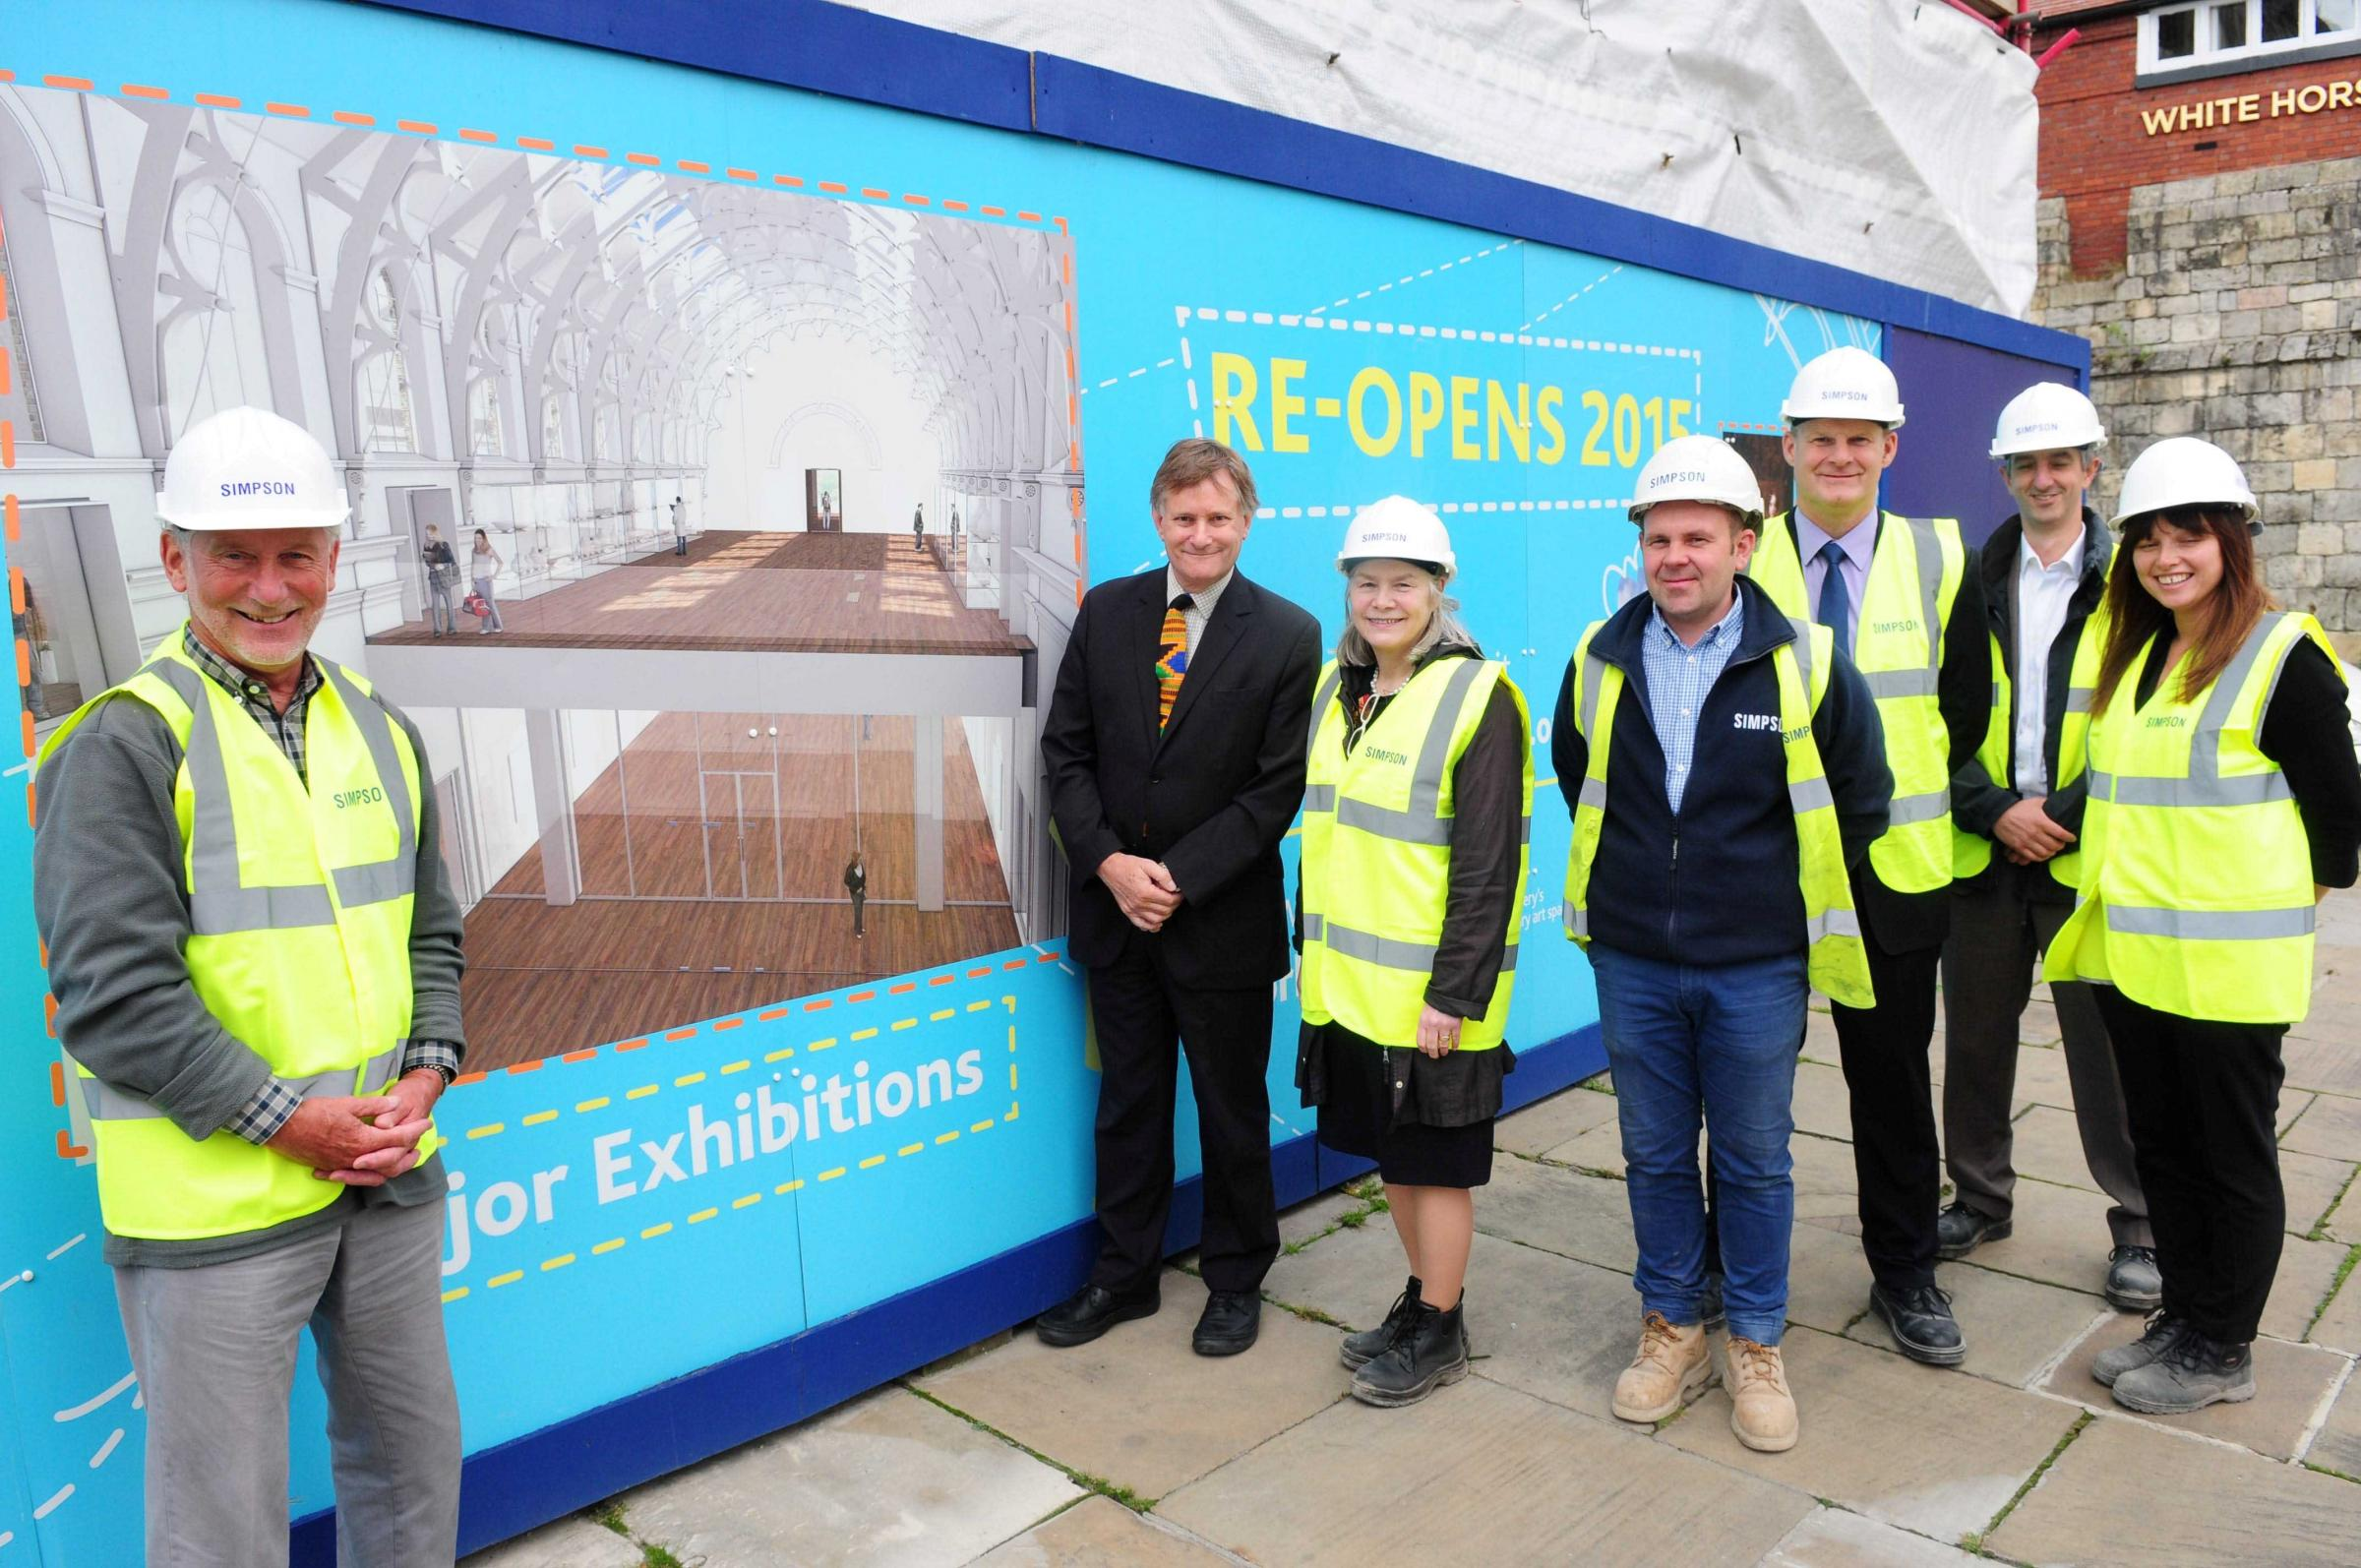 Hugh Bayley MP pictured on a visit to York Art Gallery, pictured next to Janet Barnes and her colleagues associated with the revamp.